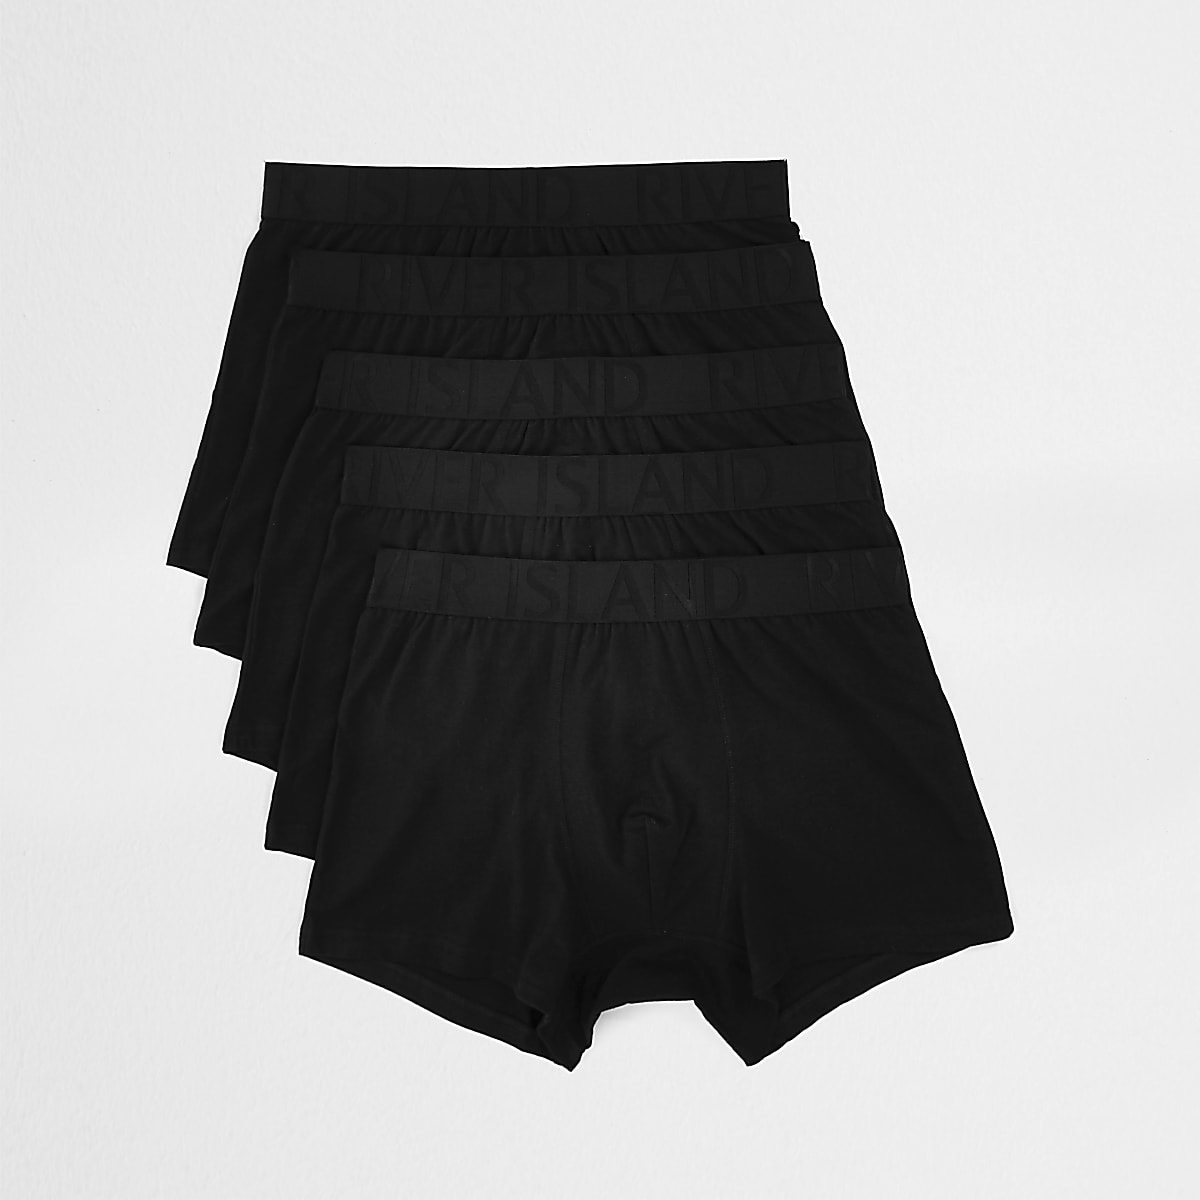 Big and Tall black trunks 5 pack